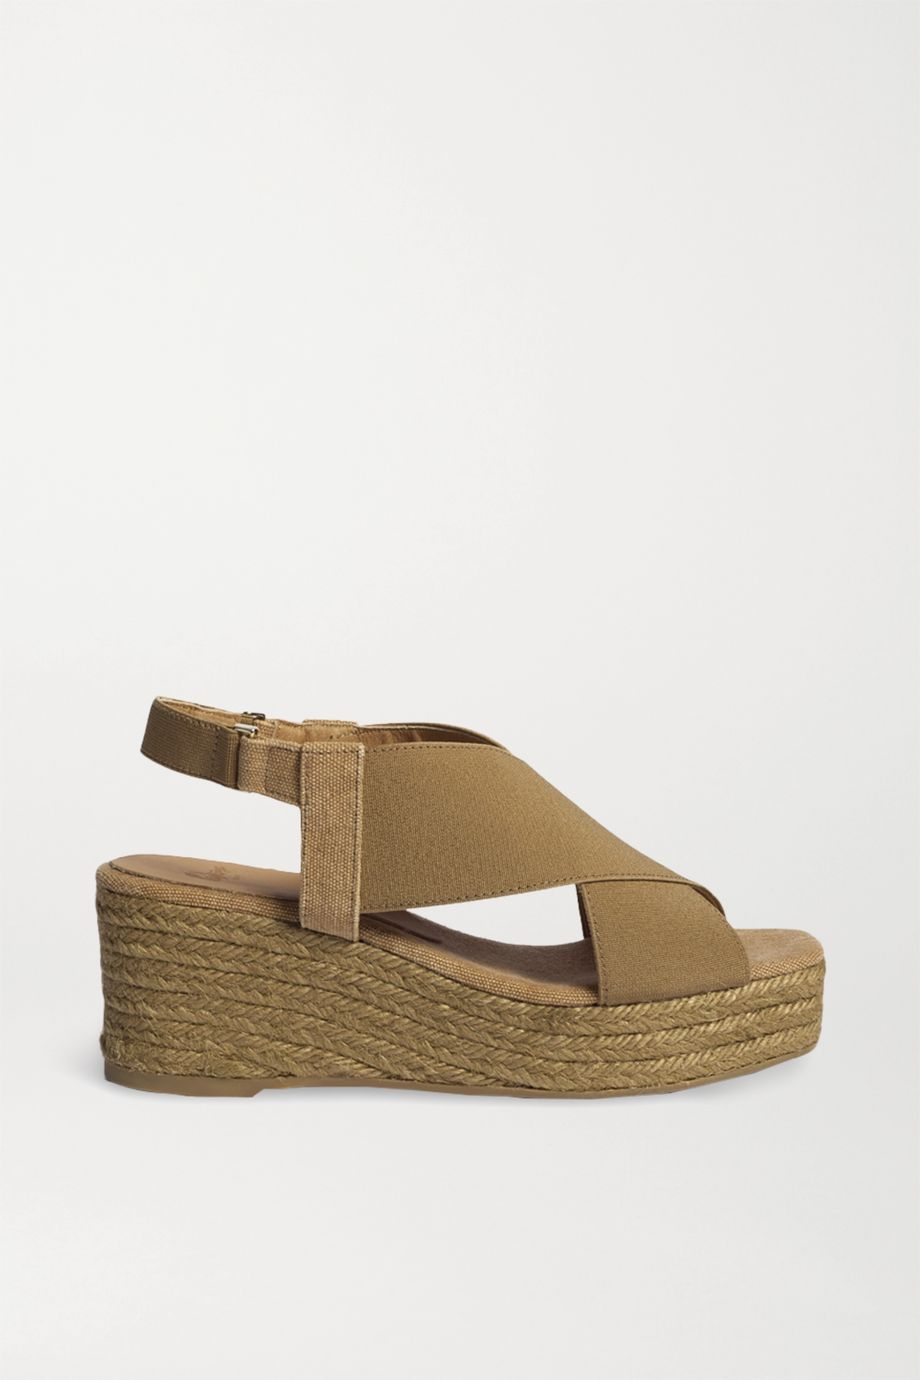 Castañer Quilu 70 canvas-trimmed wedge espadrilles